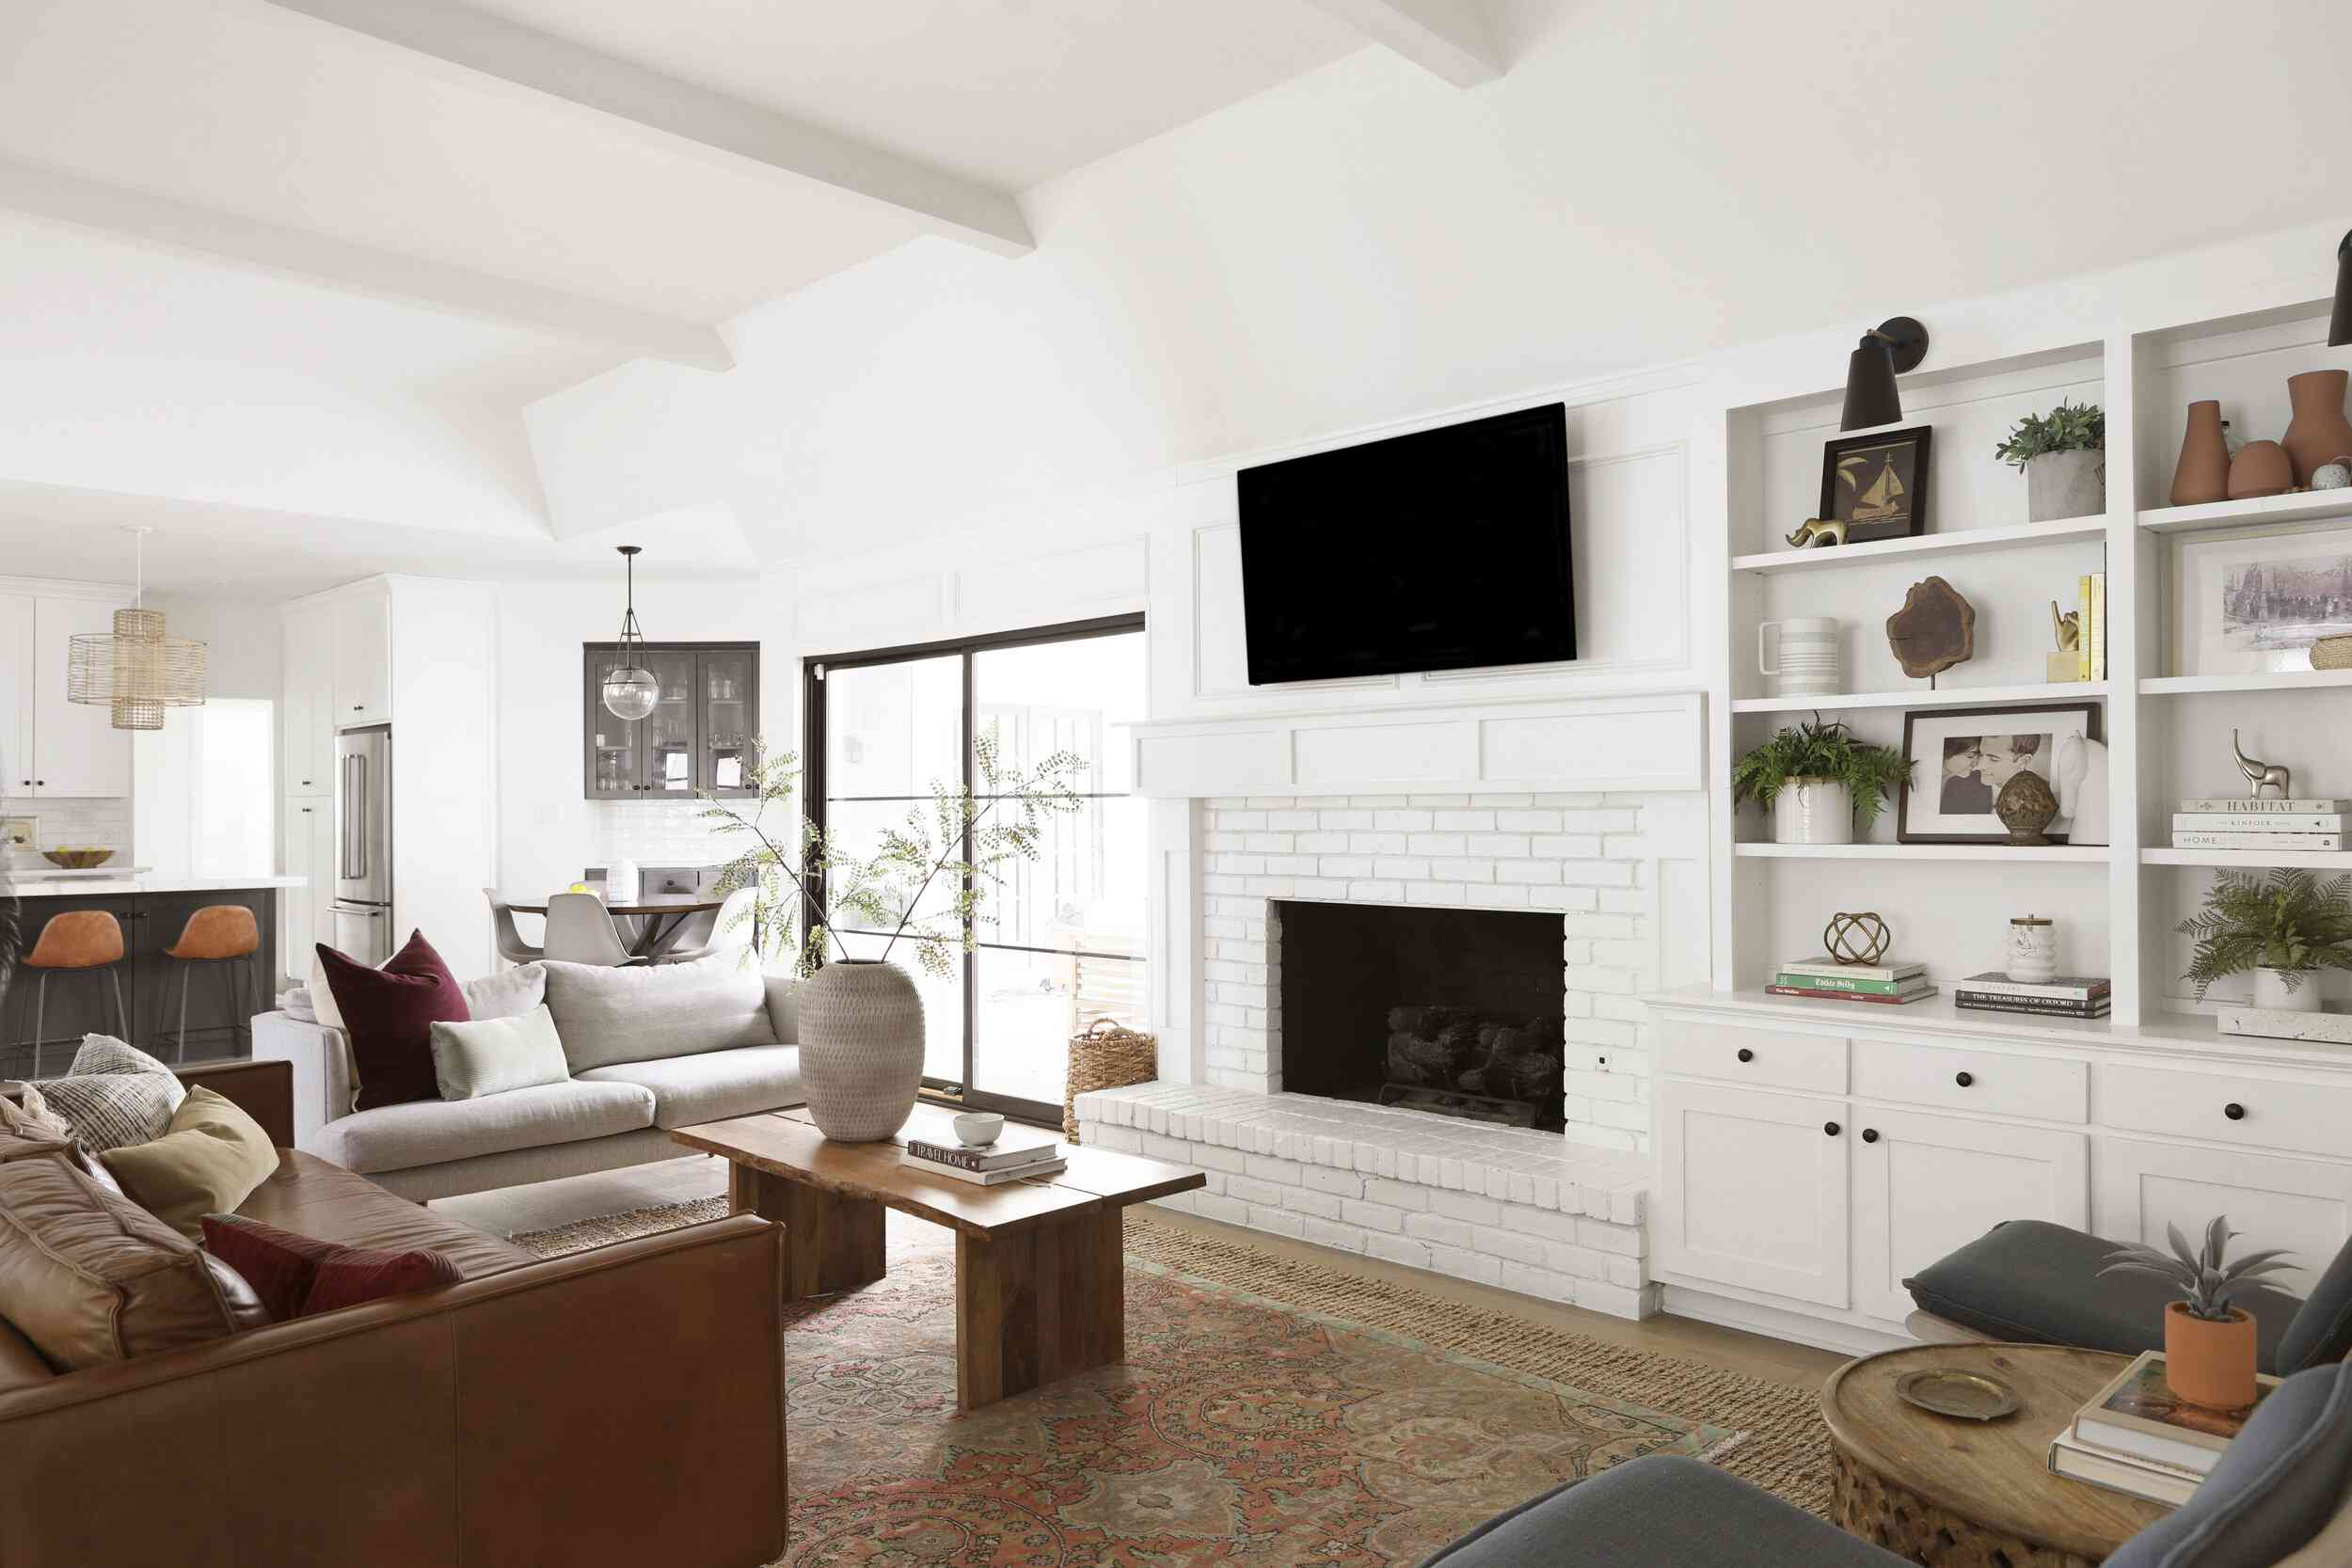 Living room with TV over the fireplace